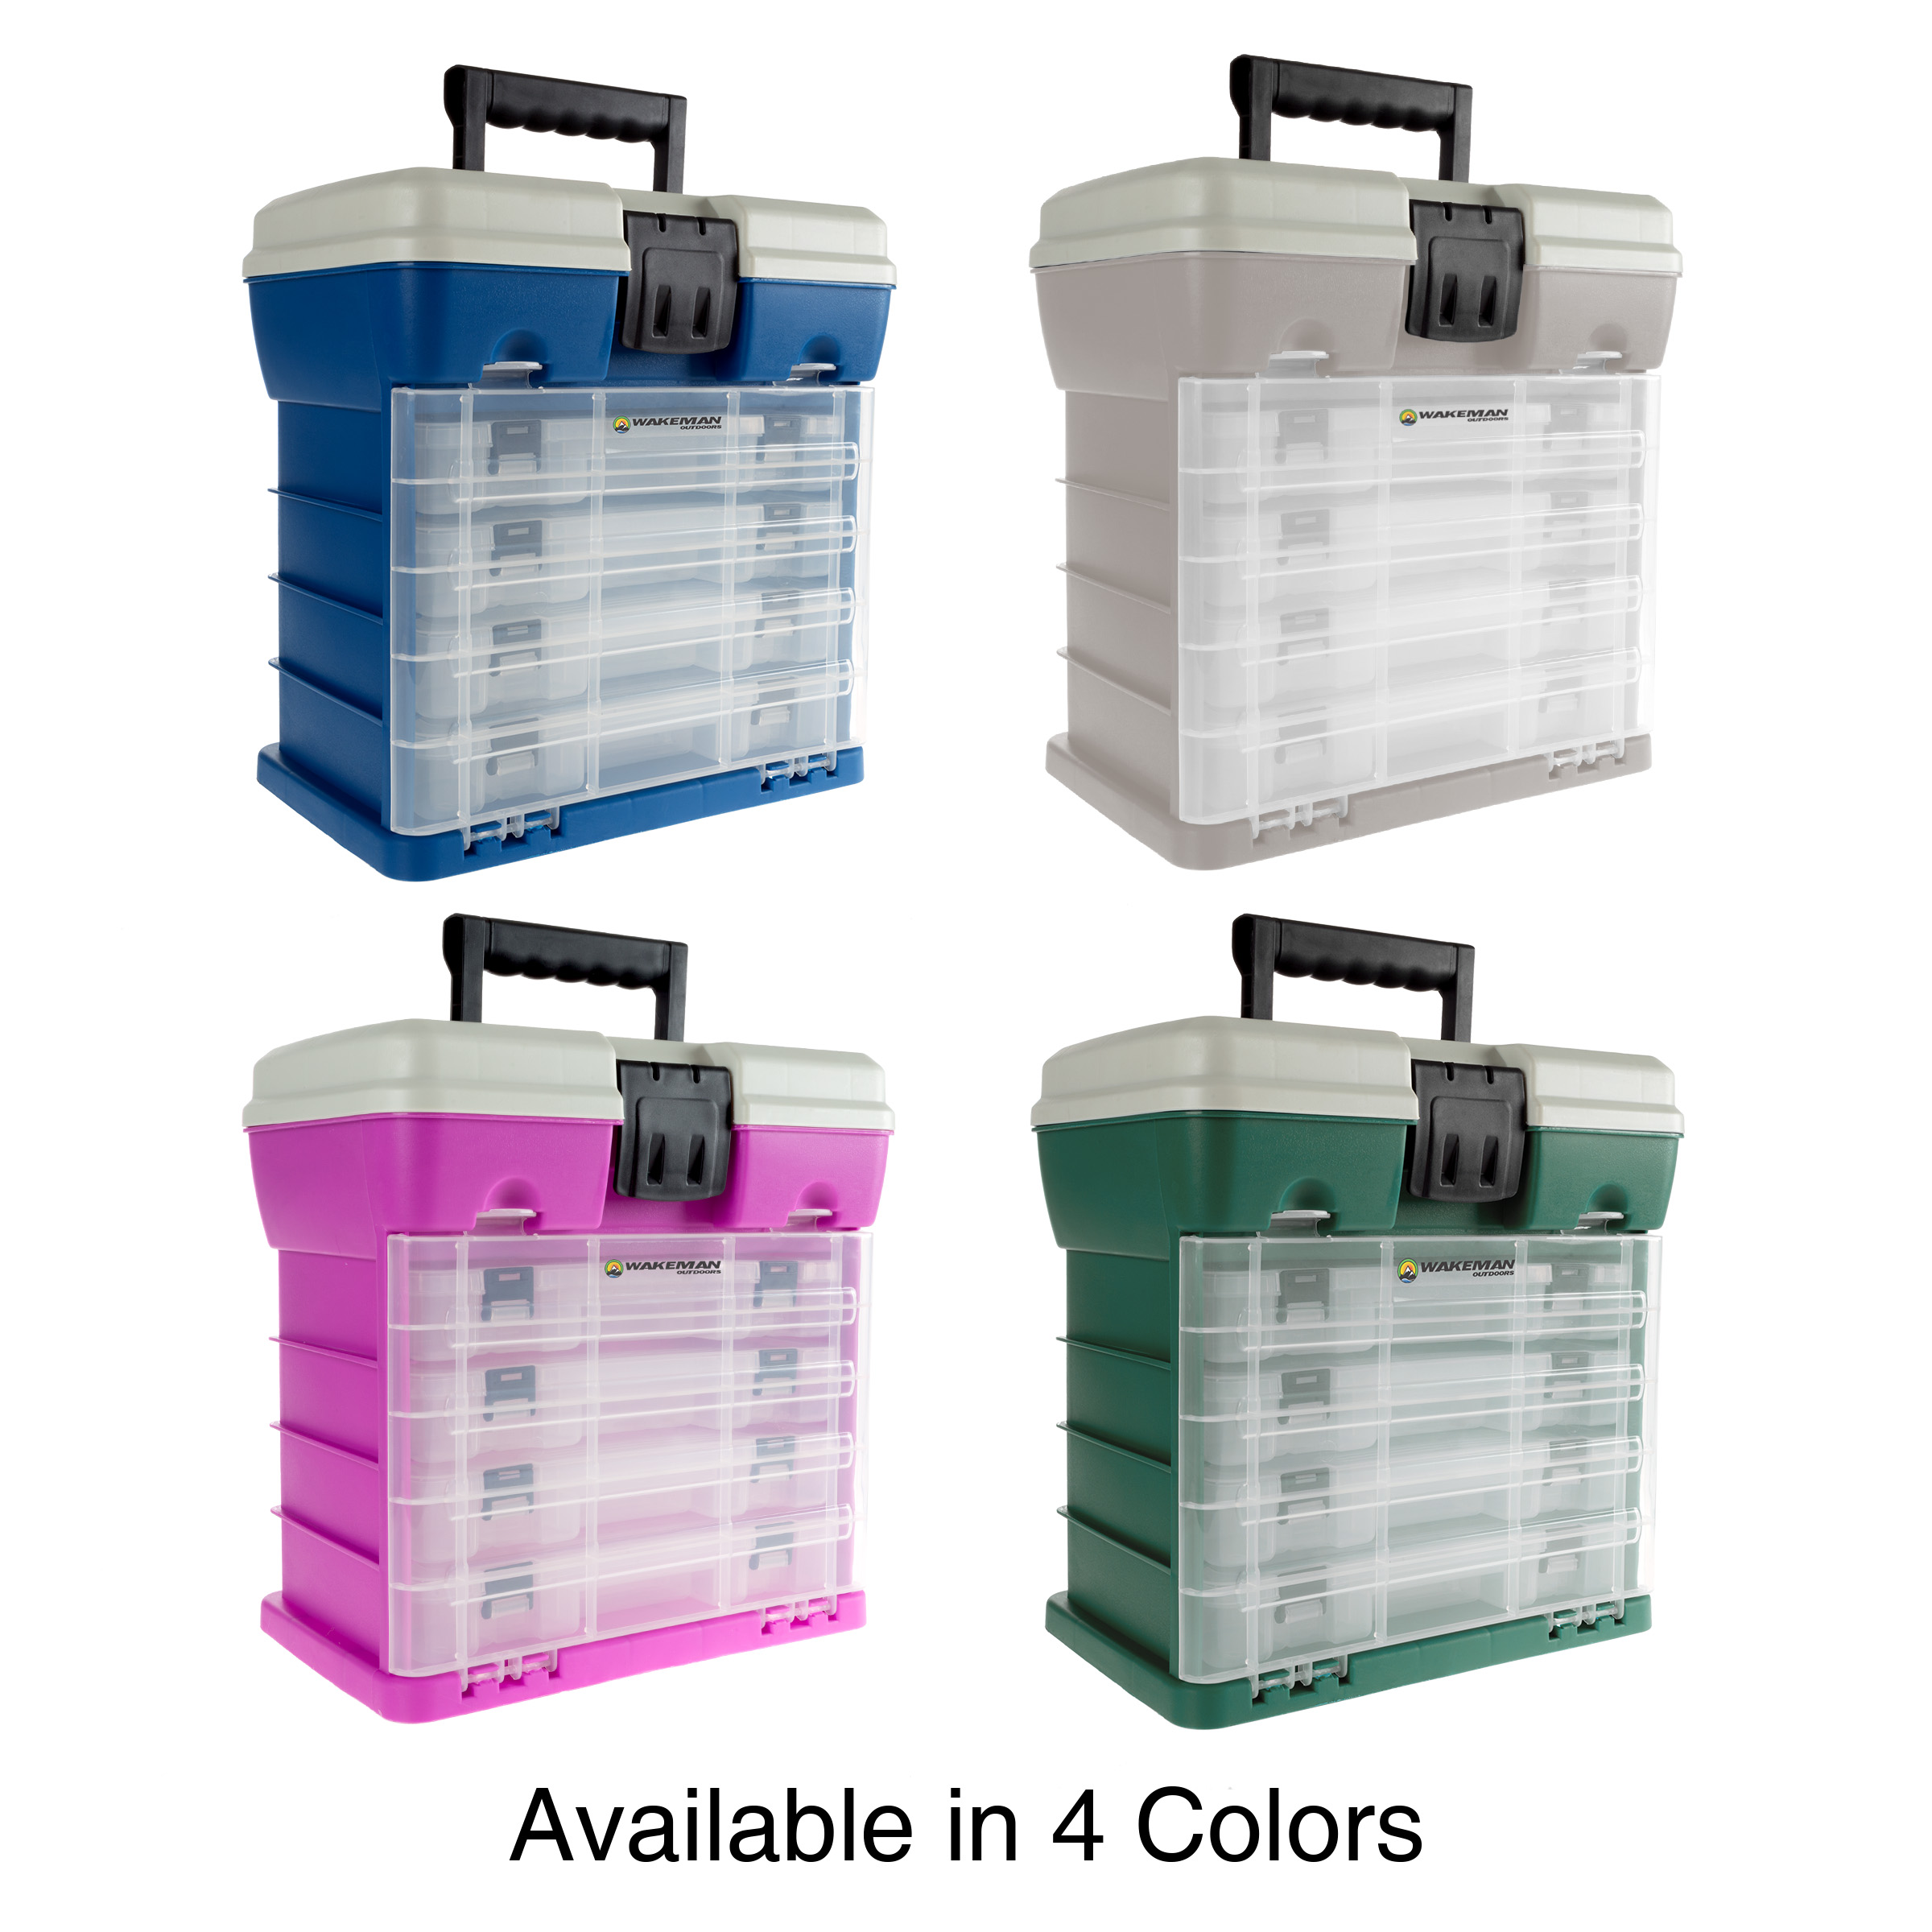 Green 19 Compartments Each for Camping Supplies and Fishing Tackle by Wakeman Outdoors Storage and Tool Box-Durable Organizer Utility Box-4 Drawers